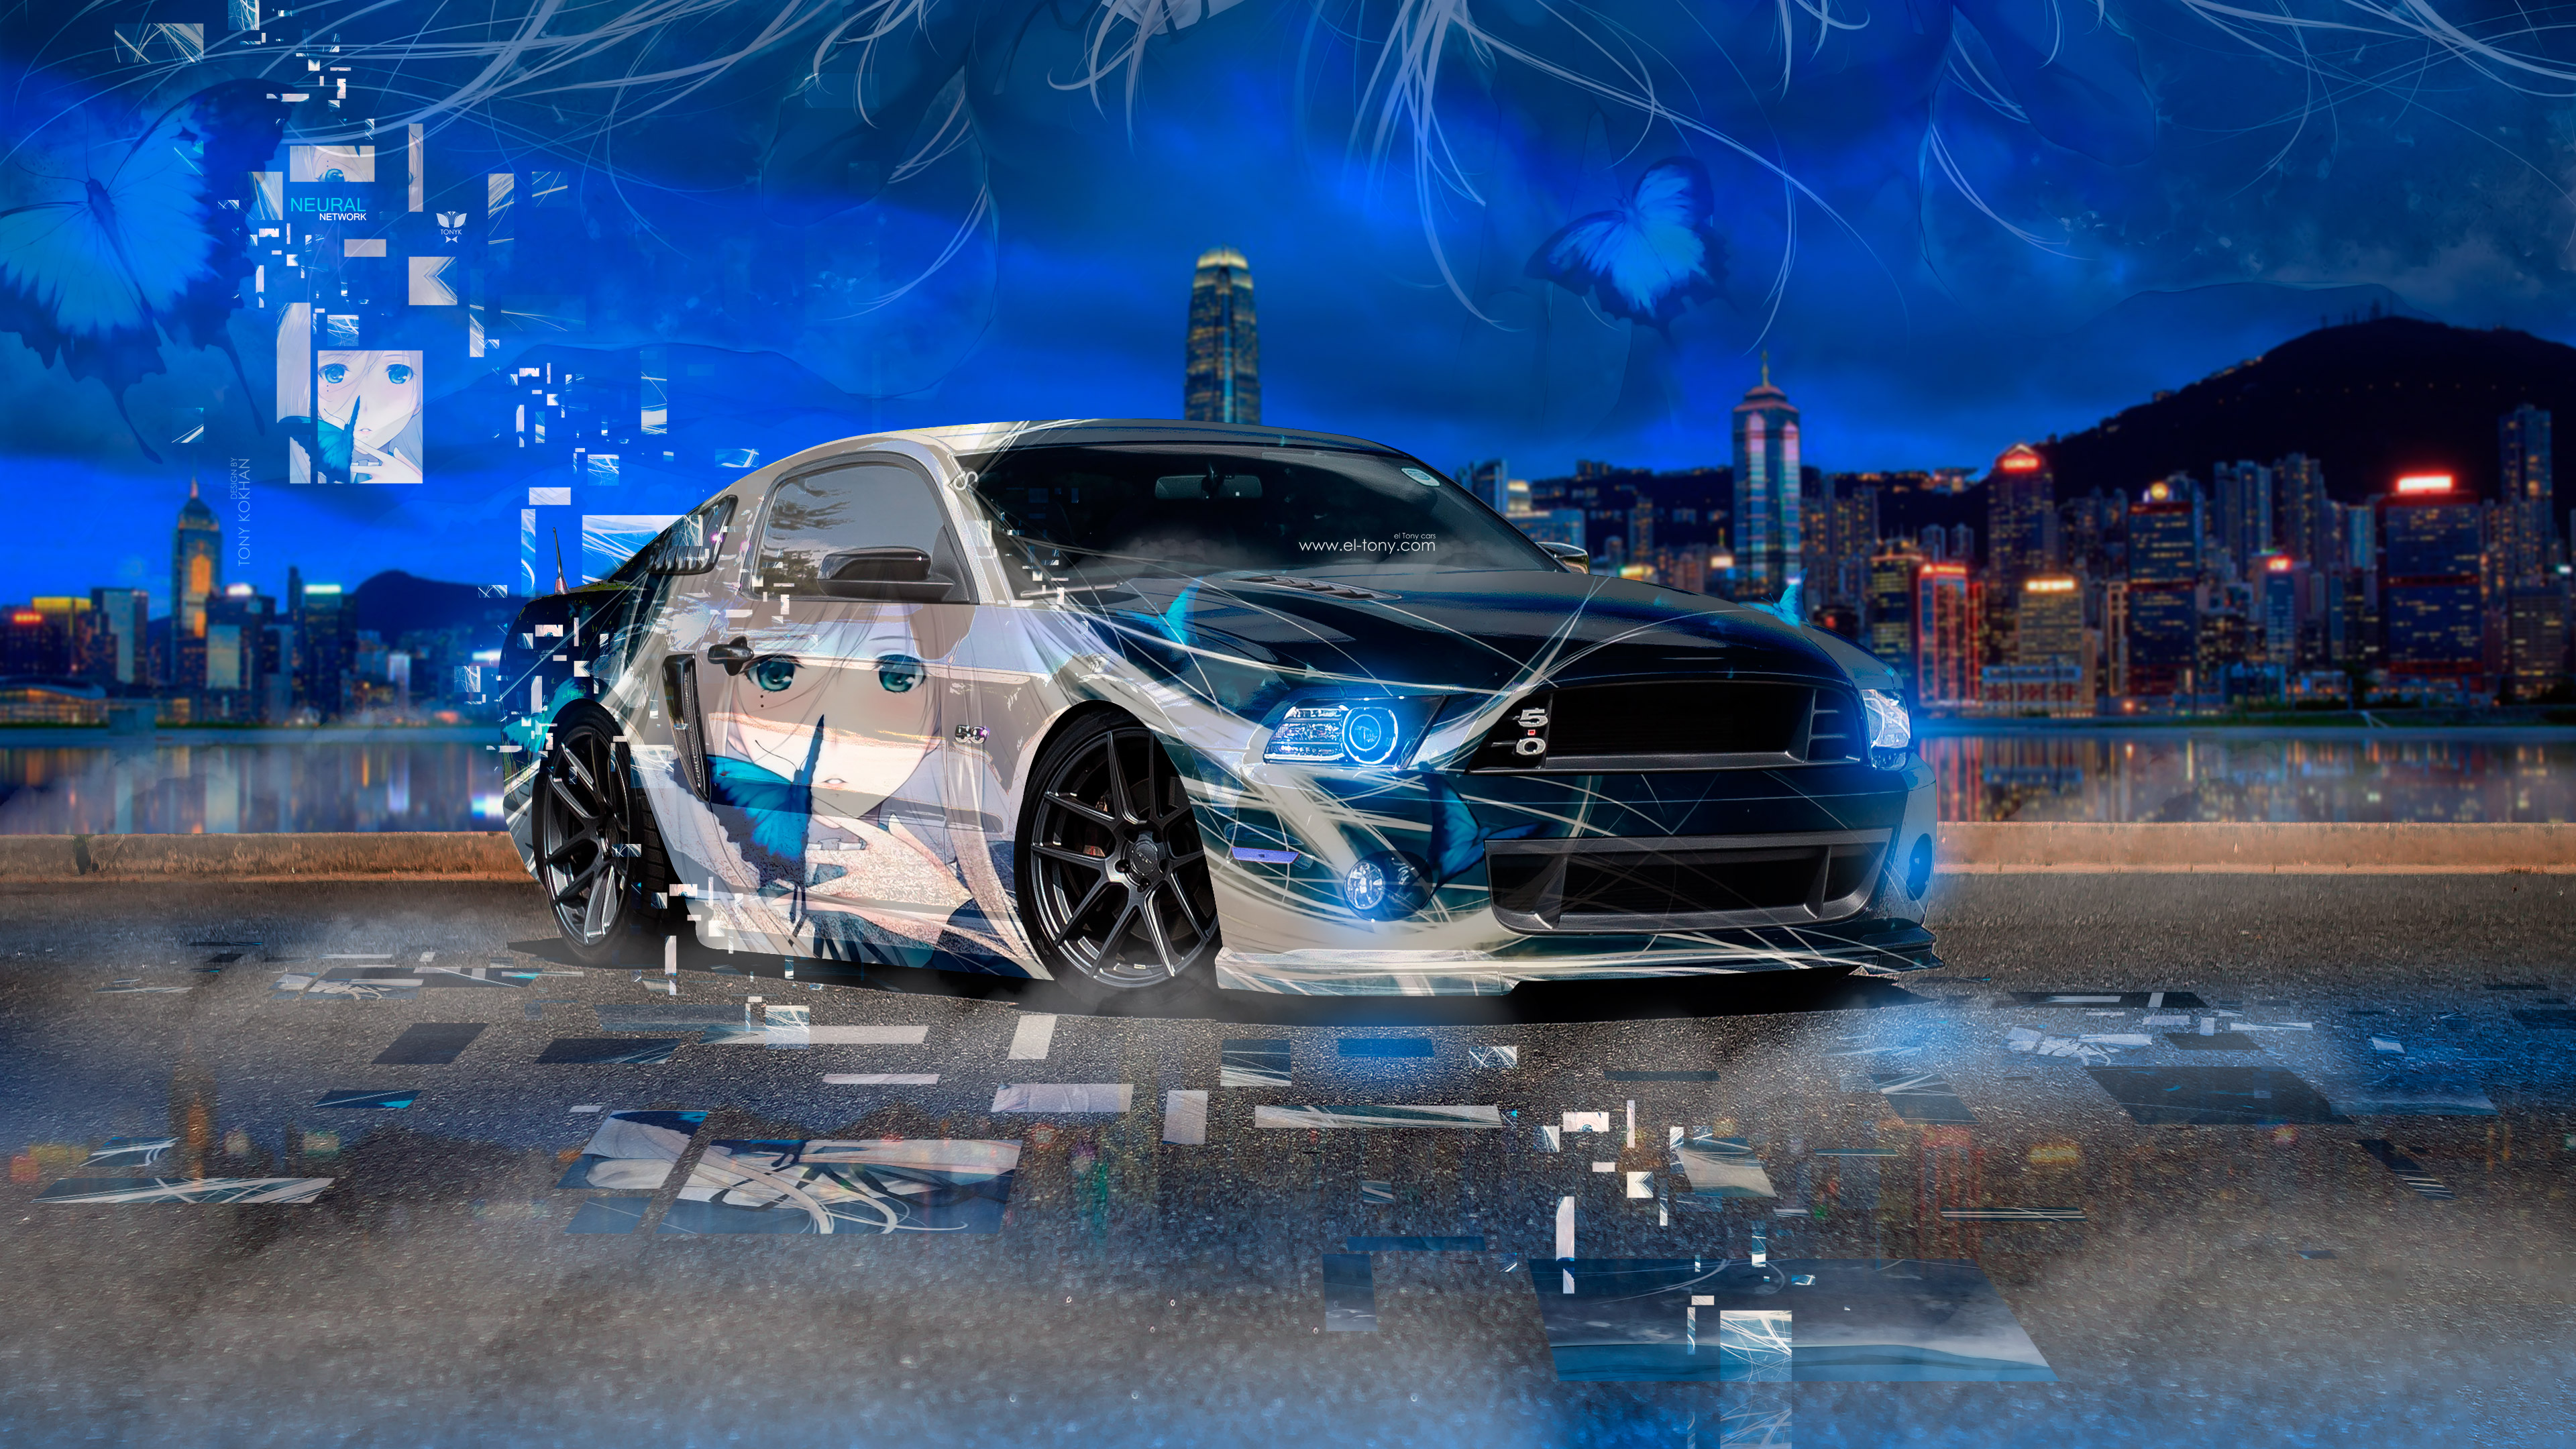 Ford-Mustang-Shelby-Muscle-Anime-Girl-Butterfly-Aerography-Neural-Network-Square-Effects-Art-Car-2018-Multicolors-4K-Wallpapers-design-by-Tony-Kokhan-www.el-tony.com-image